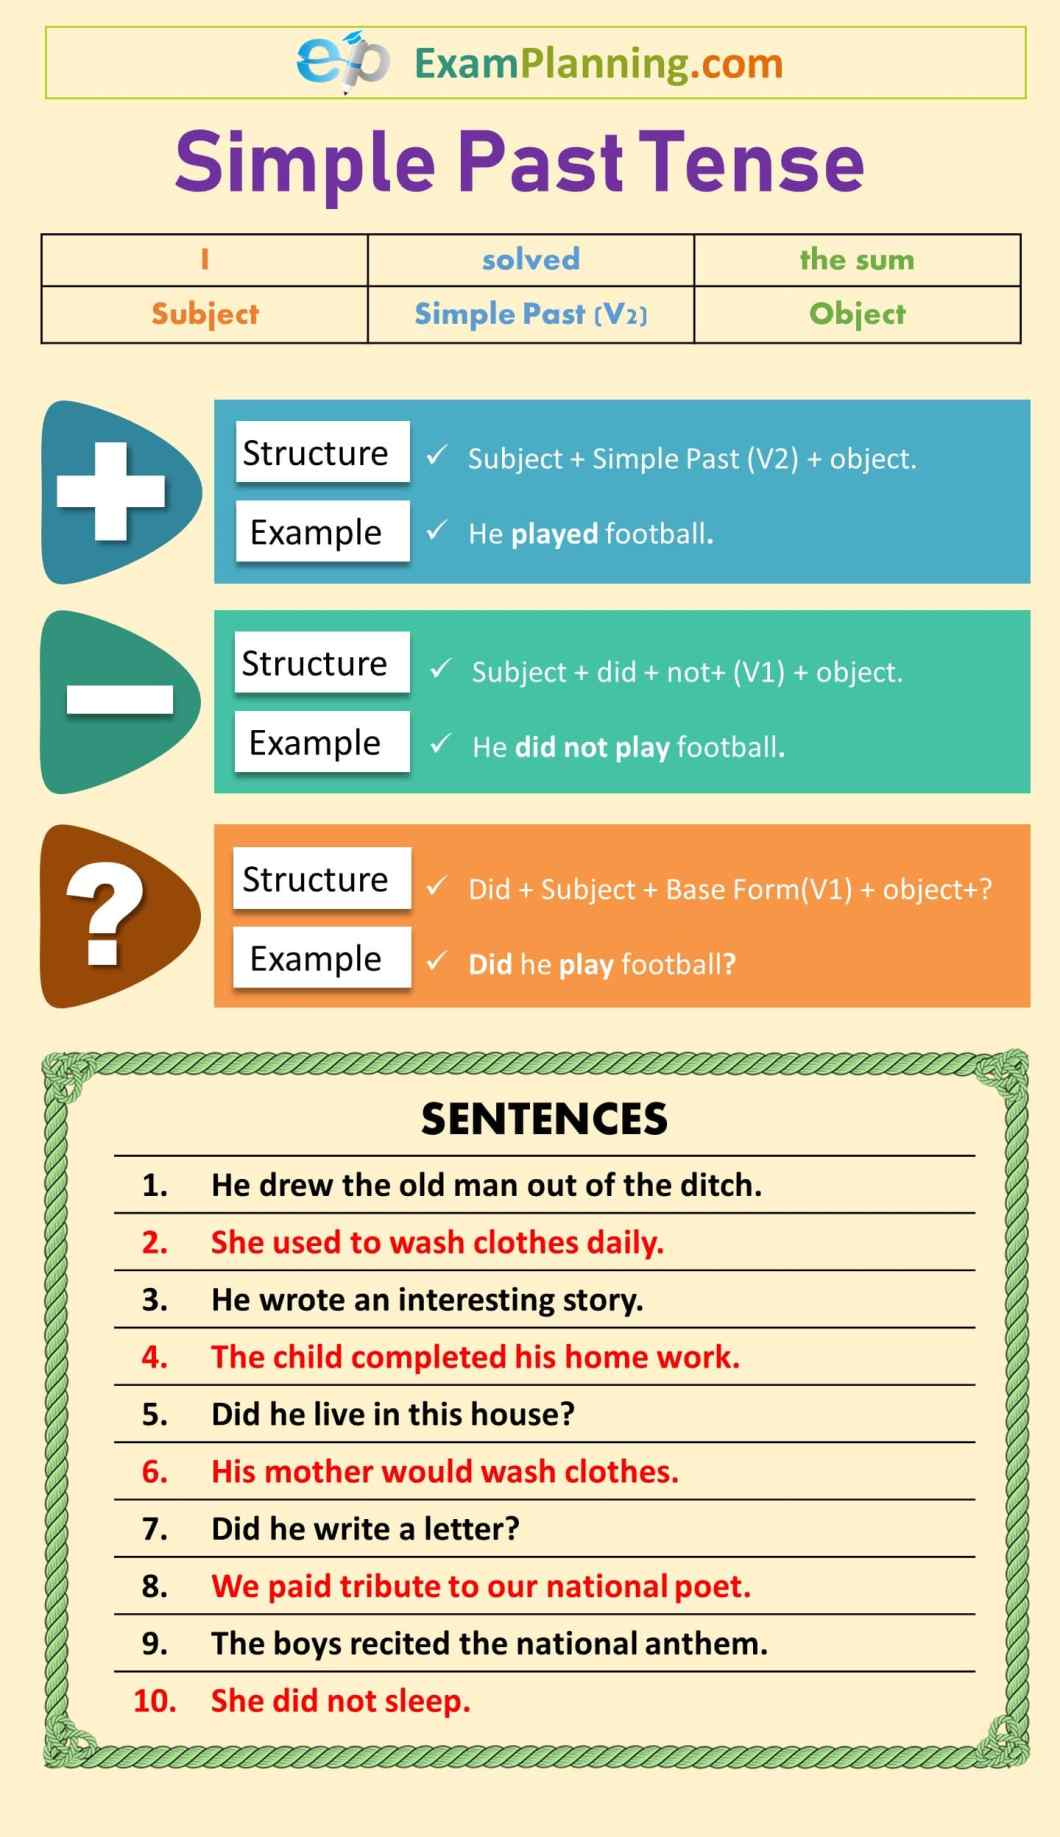 Simple past tense formula & sentences